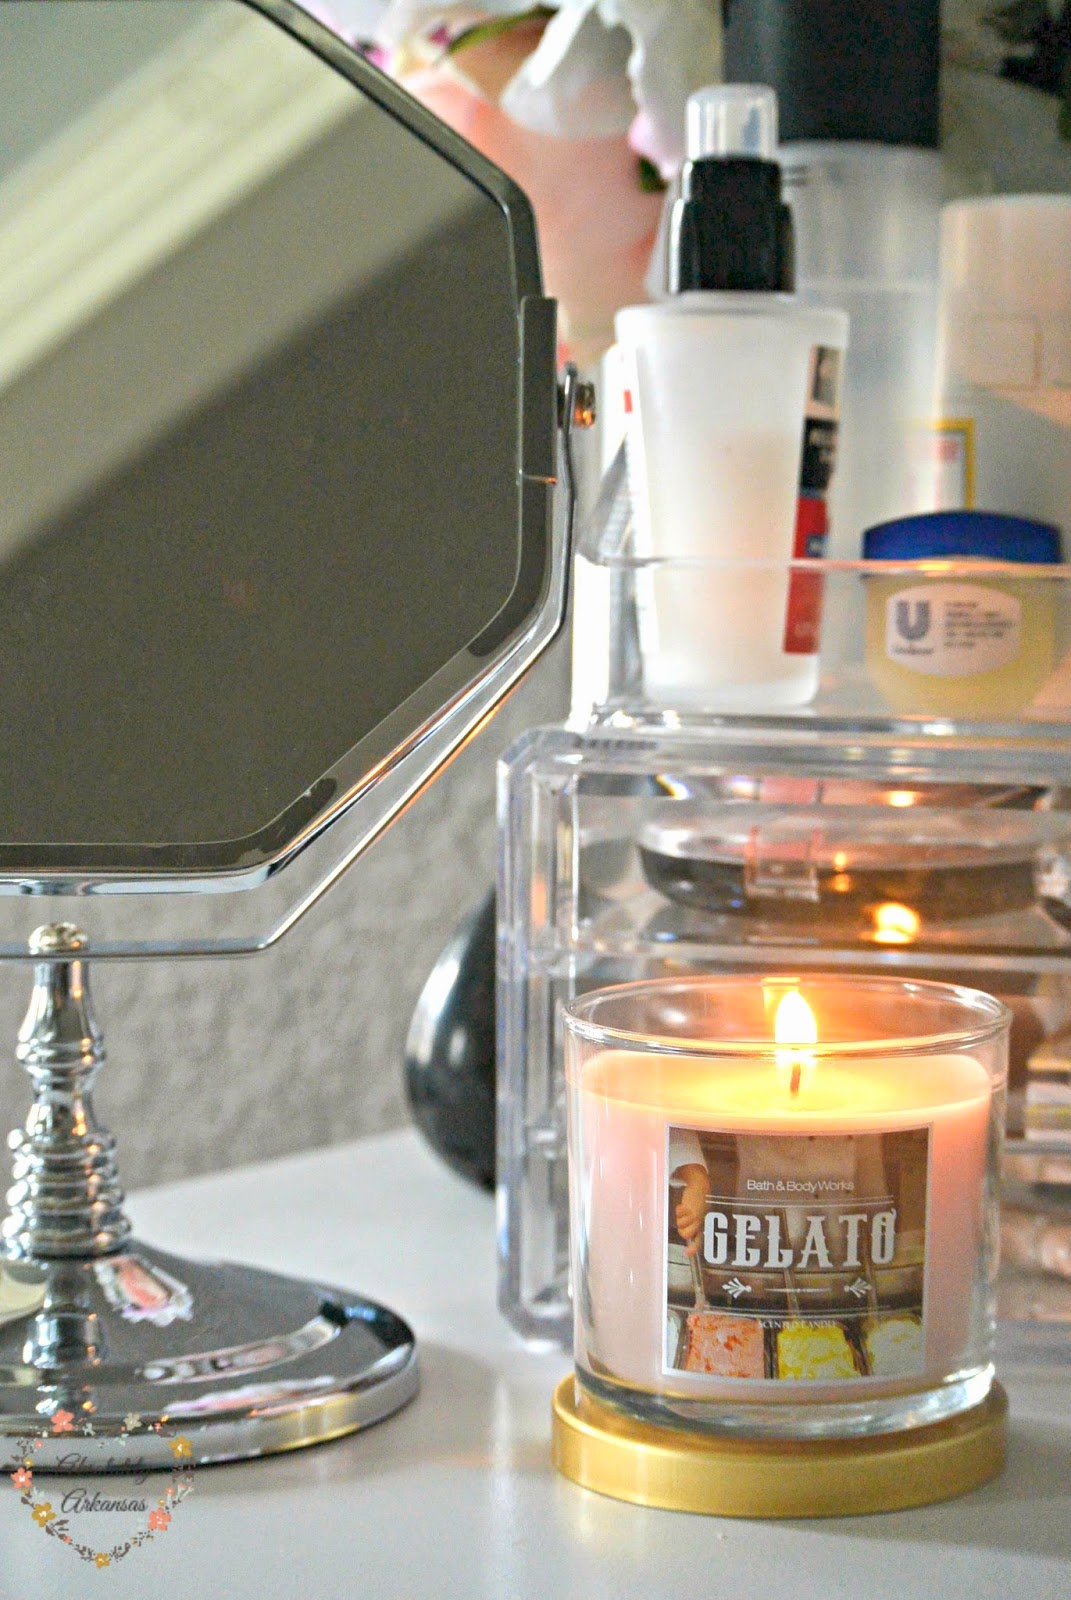 bath and body works gelato candle